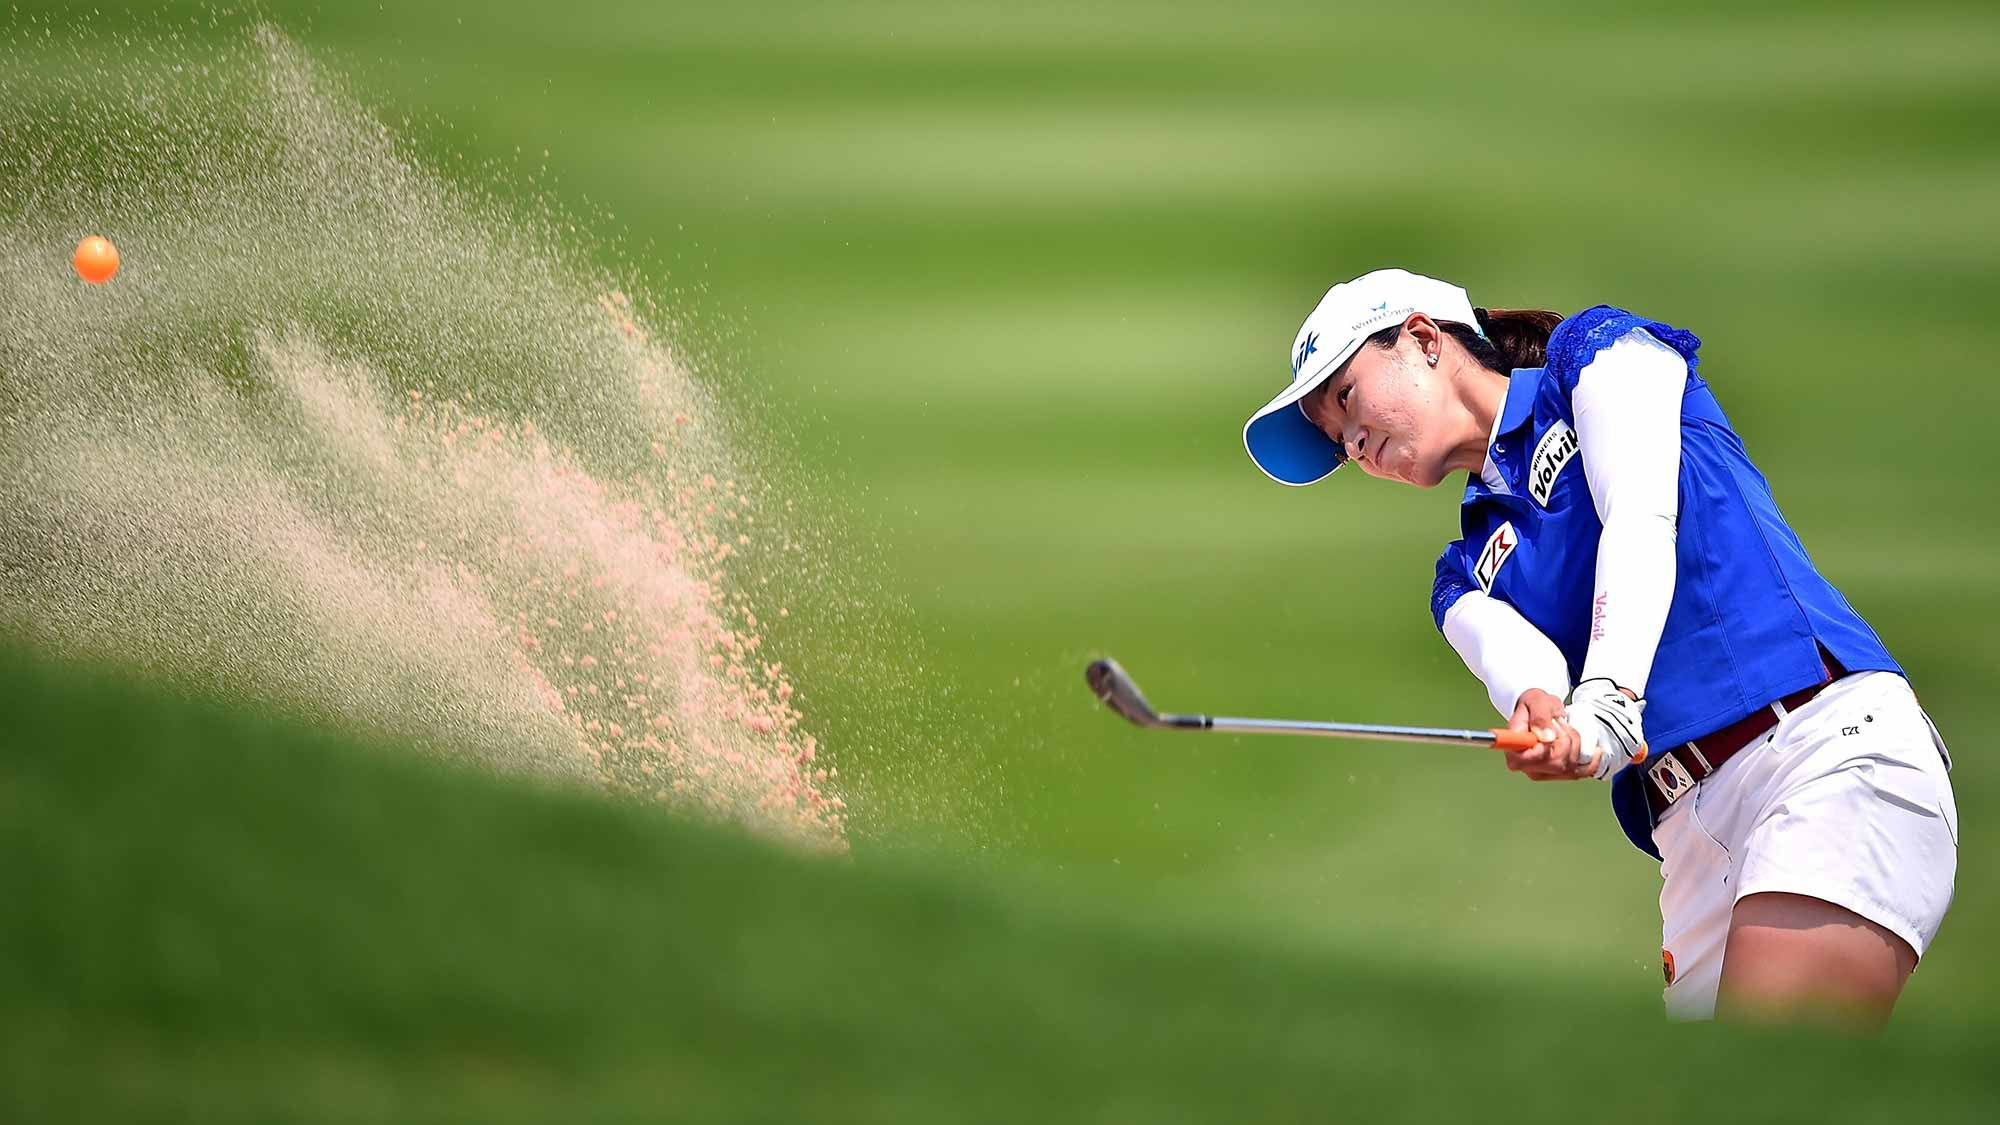 Chella Choi of South Korea plays a shot during day three of the 2016 Honda LPGA Thailand at Siam Country Club